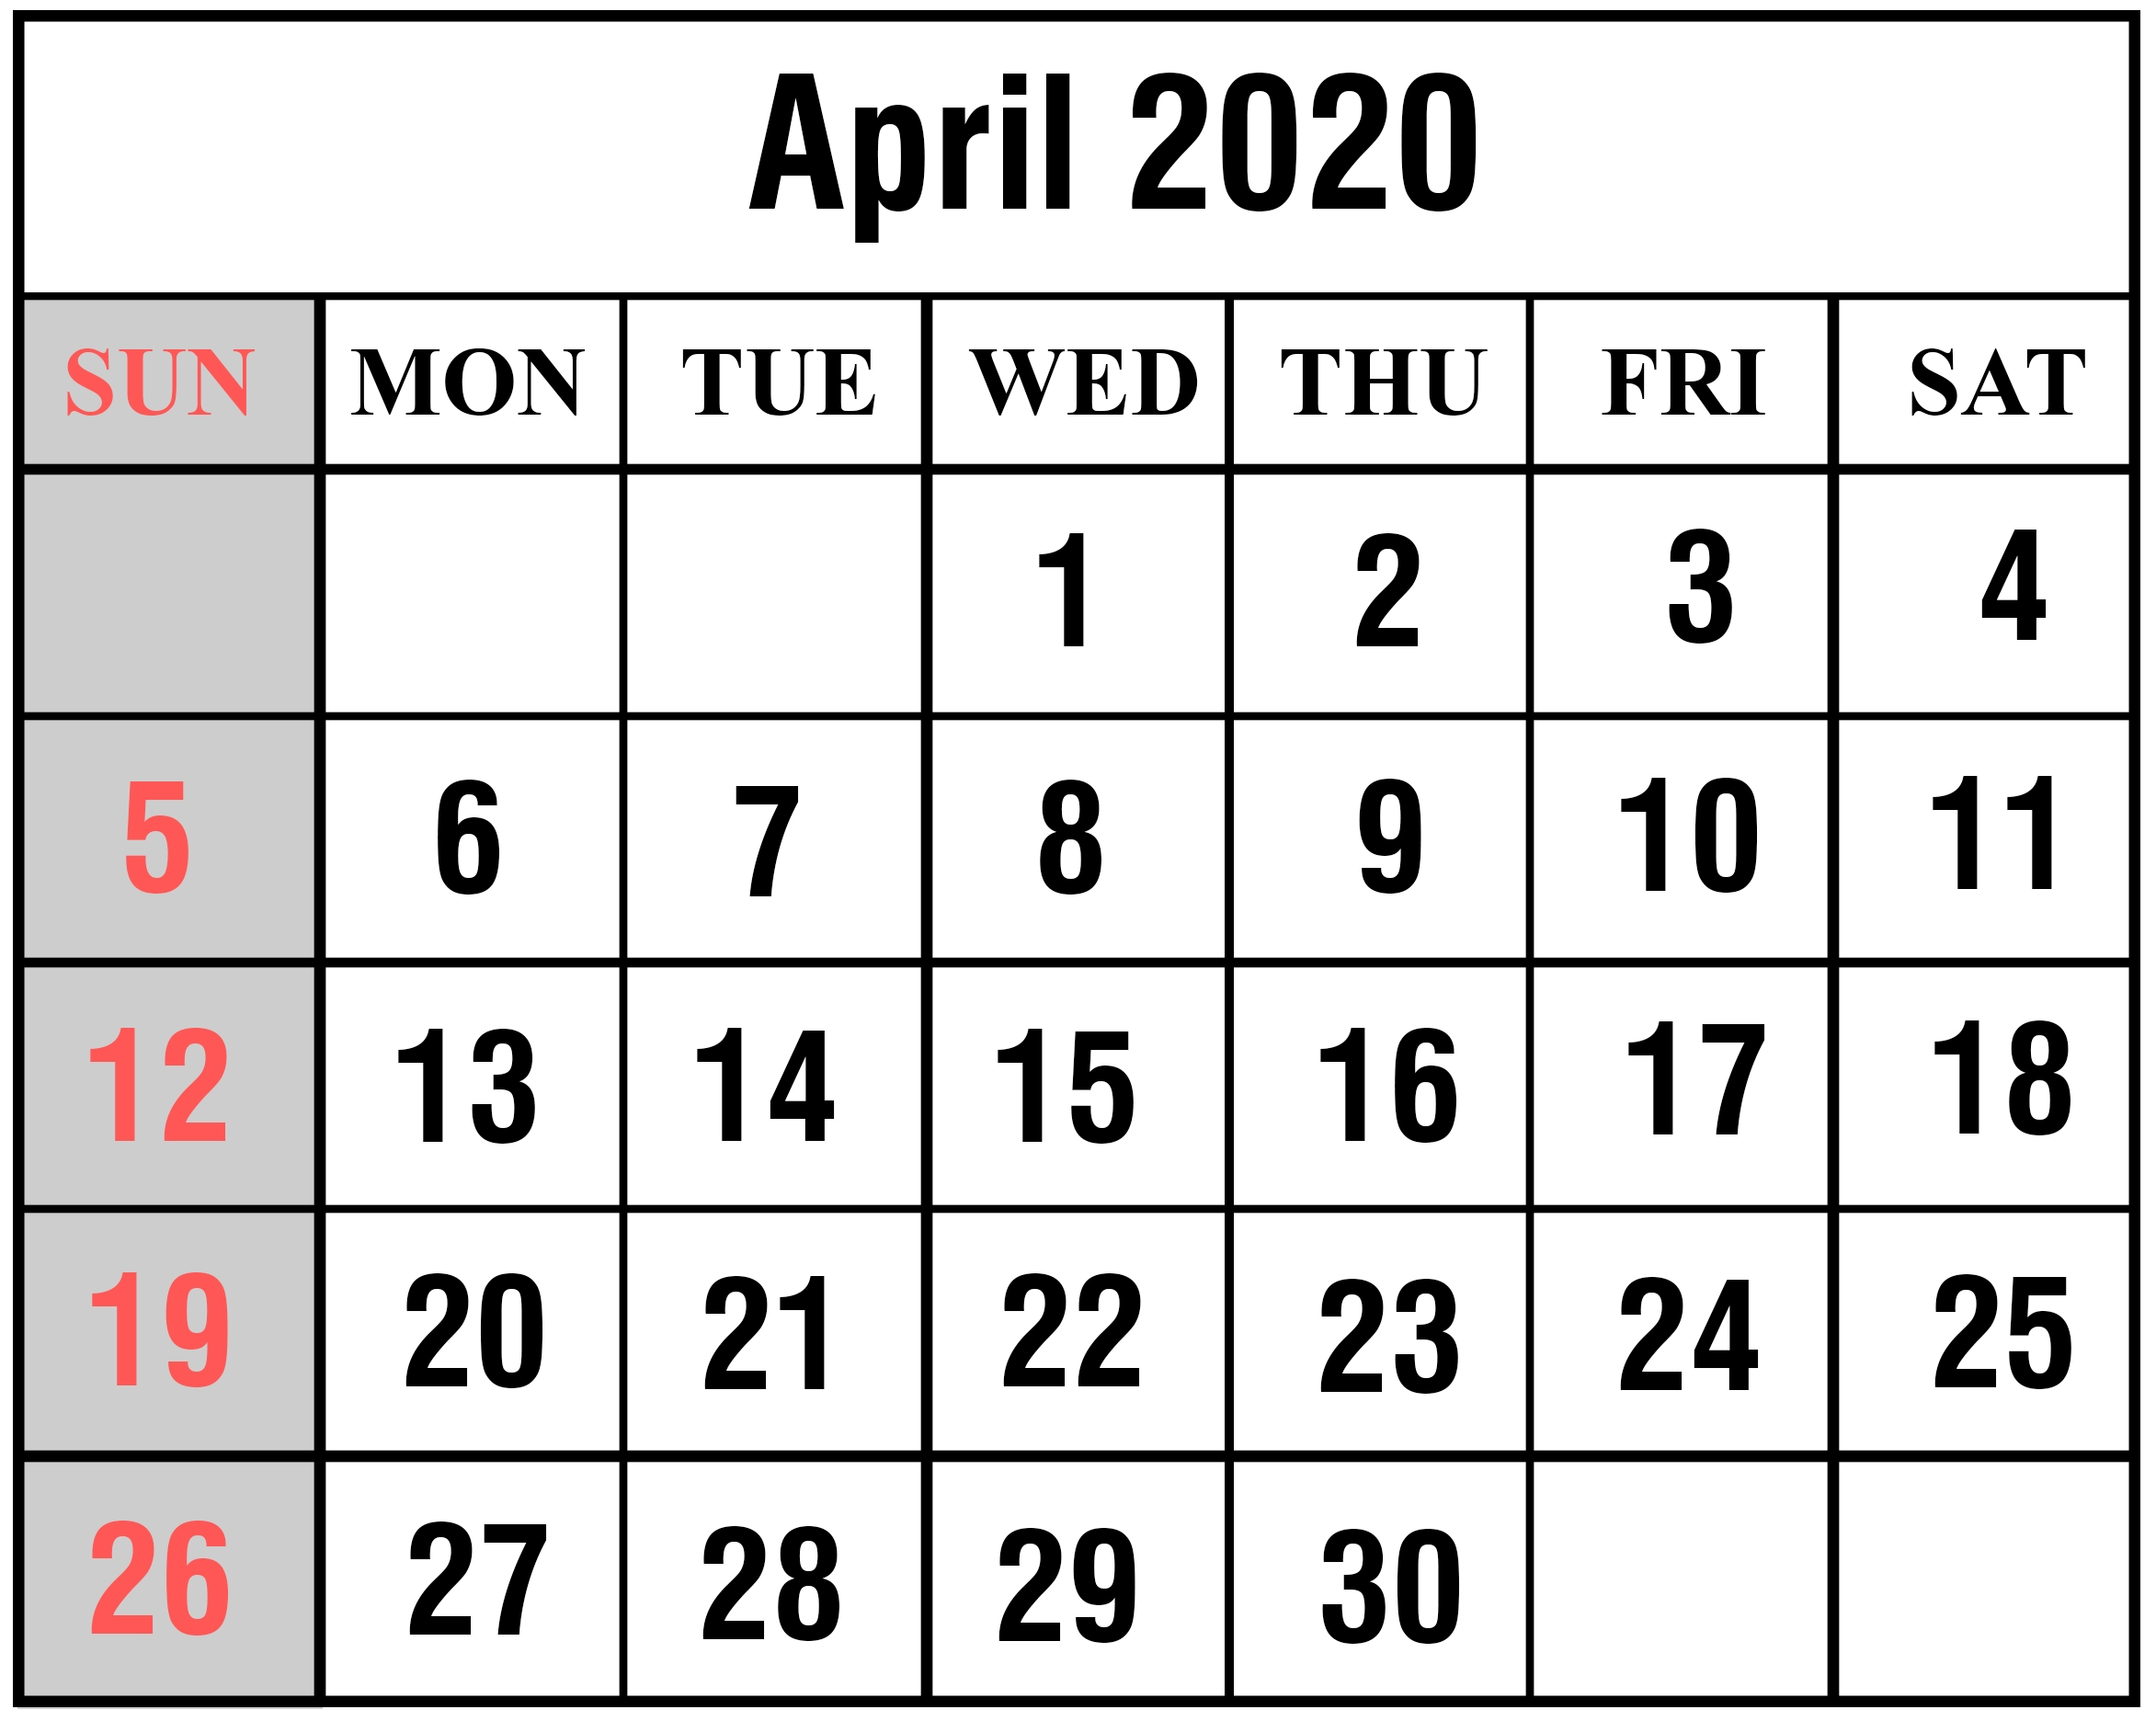 2020 Calender With Space To Write - Calendar Inspiration